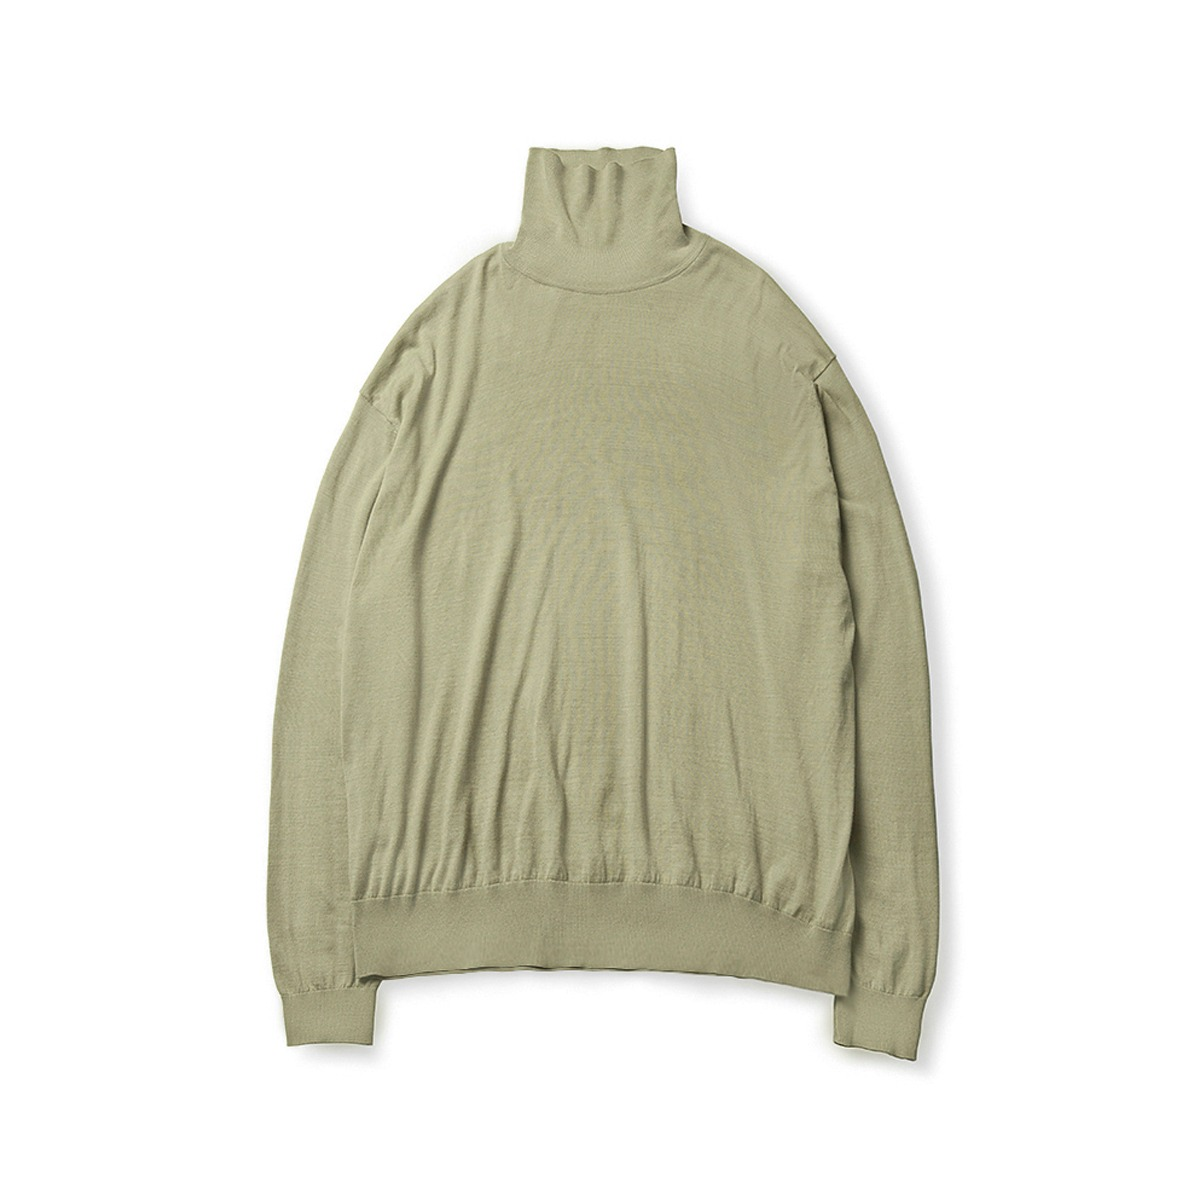 [BROWNYARD] HIGH GAUGE TURTLENECK 'LIGHT OLIVE'